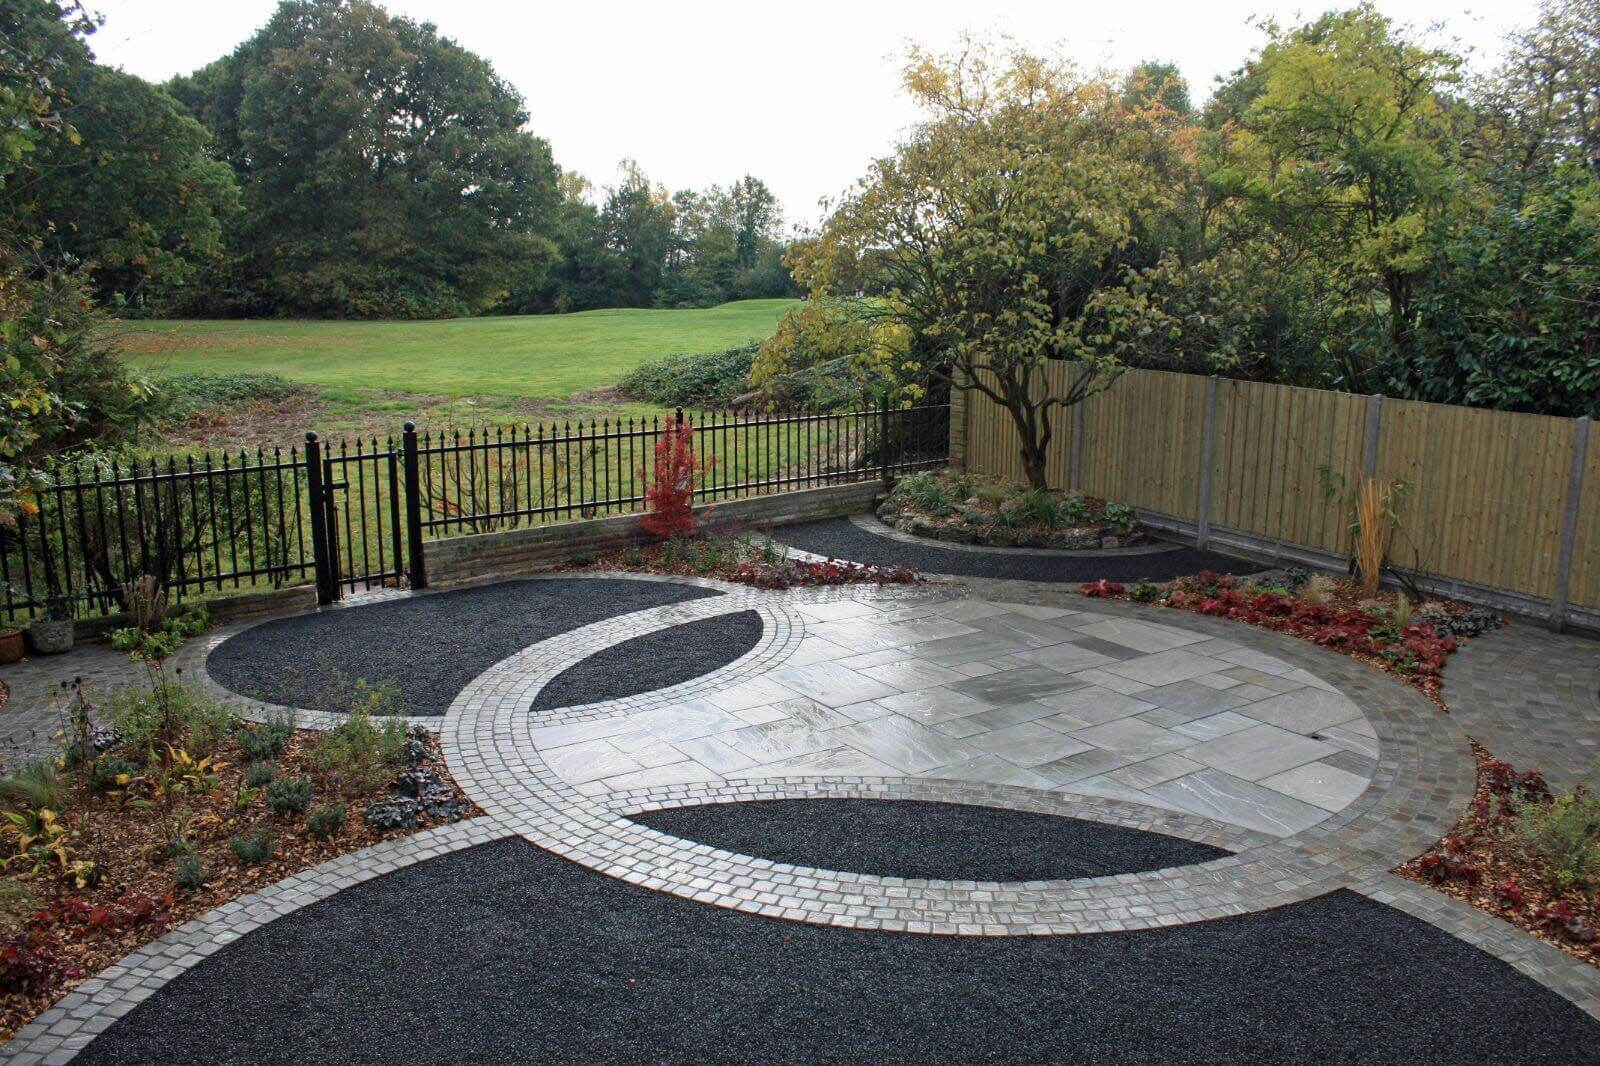 front garden view of basalt paving and fencing